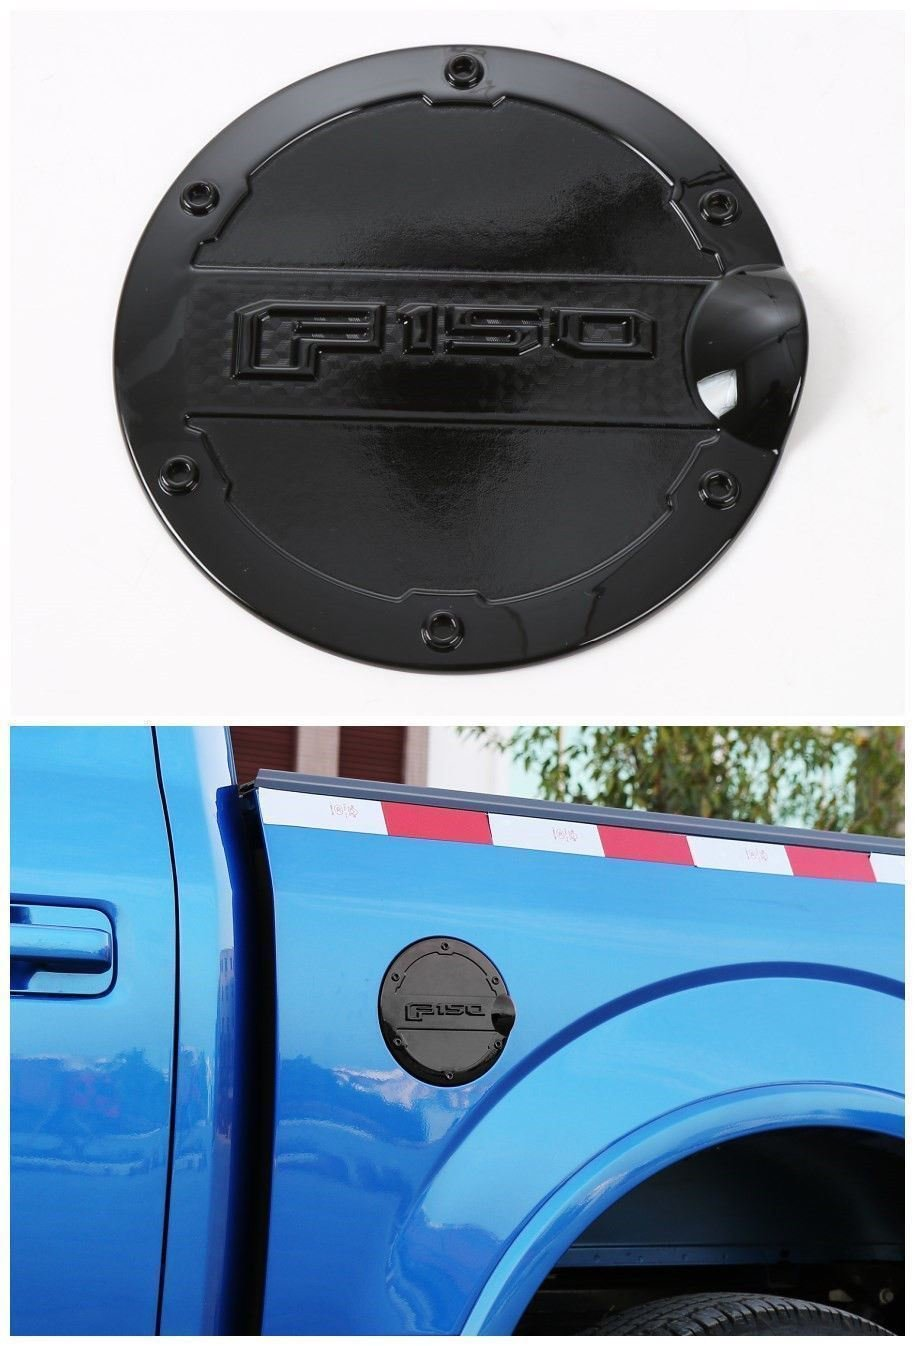 Bestmotoring for Ford F150 Gas Tank Cap Fuel Filler Cover Cover Trim for Ford F150 F 150 2015 2016 Black 1pc